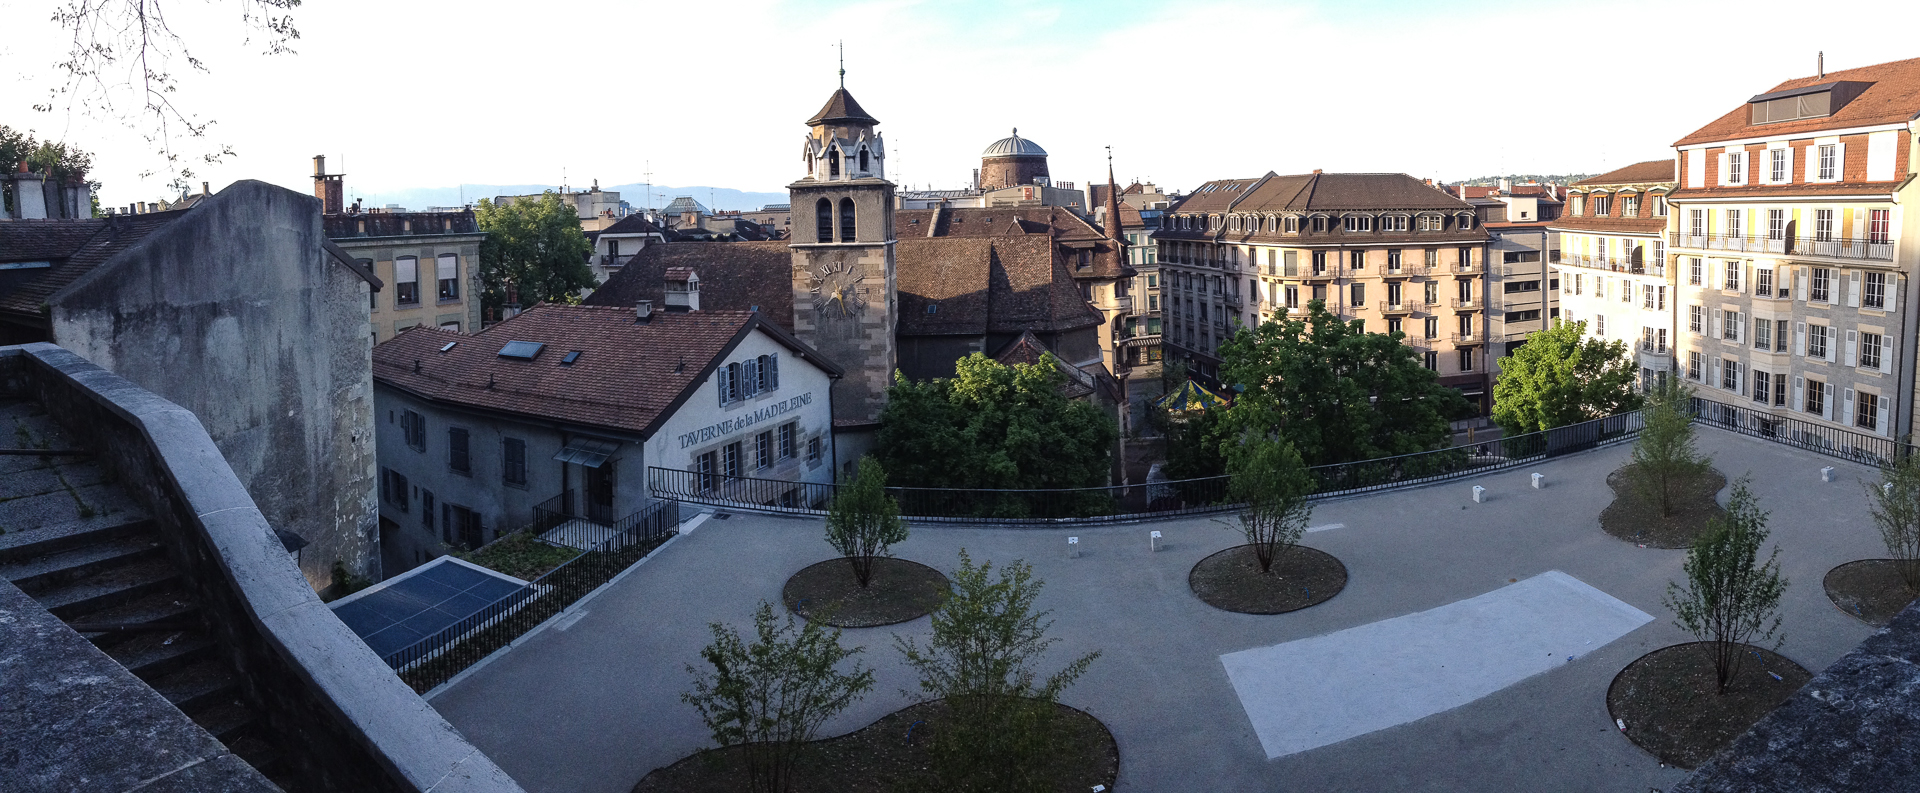 A small pano of the old town, from the base of the city's main church.